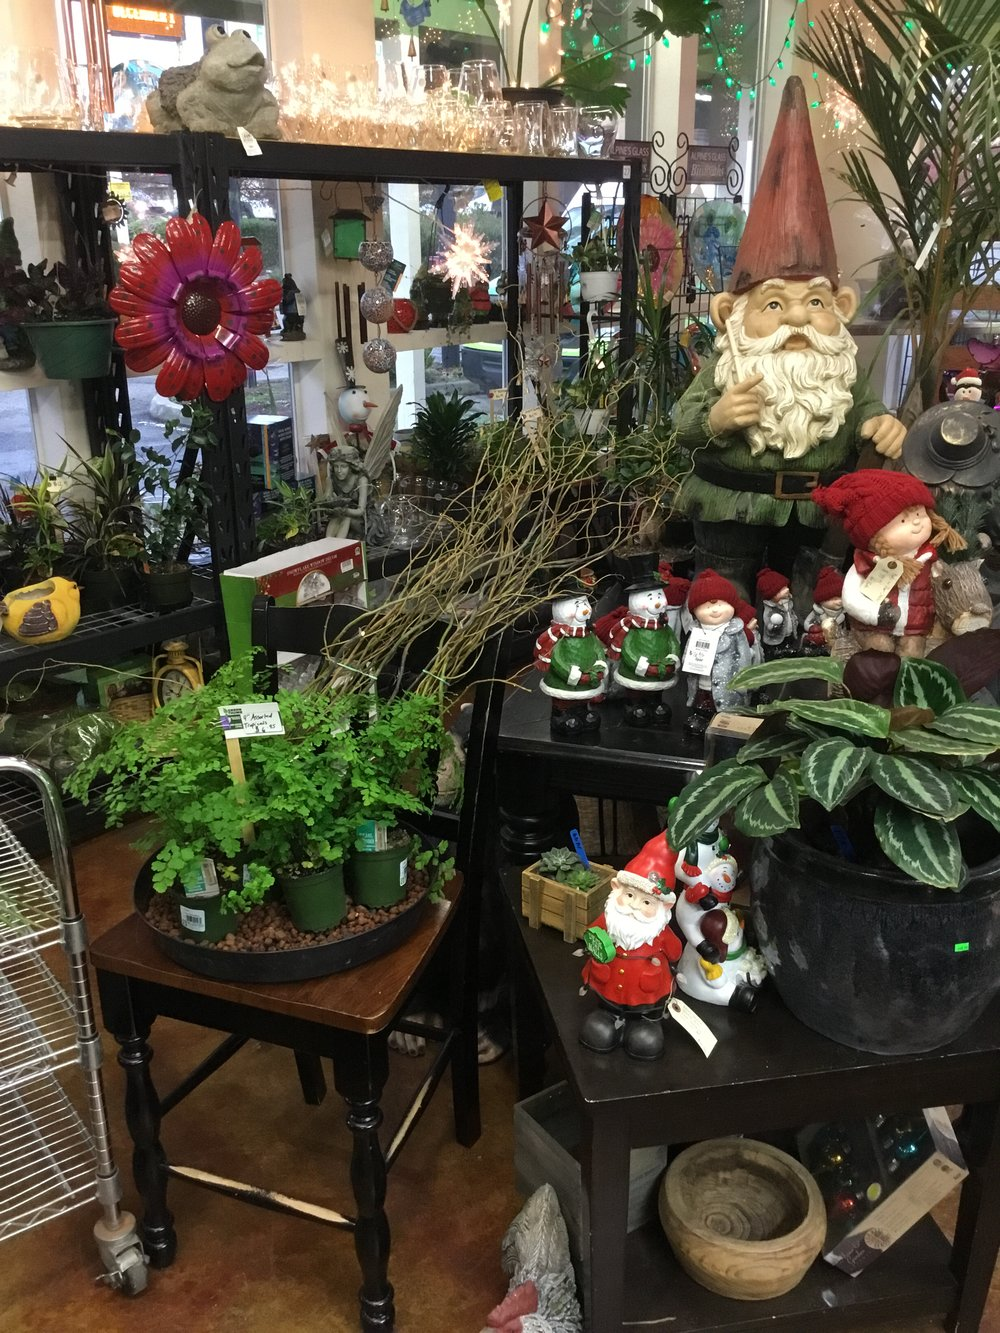 Gifts - From statuary to fairies to fountains, we have a selection of gifts and home decor to choose from.